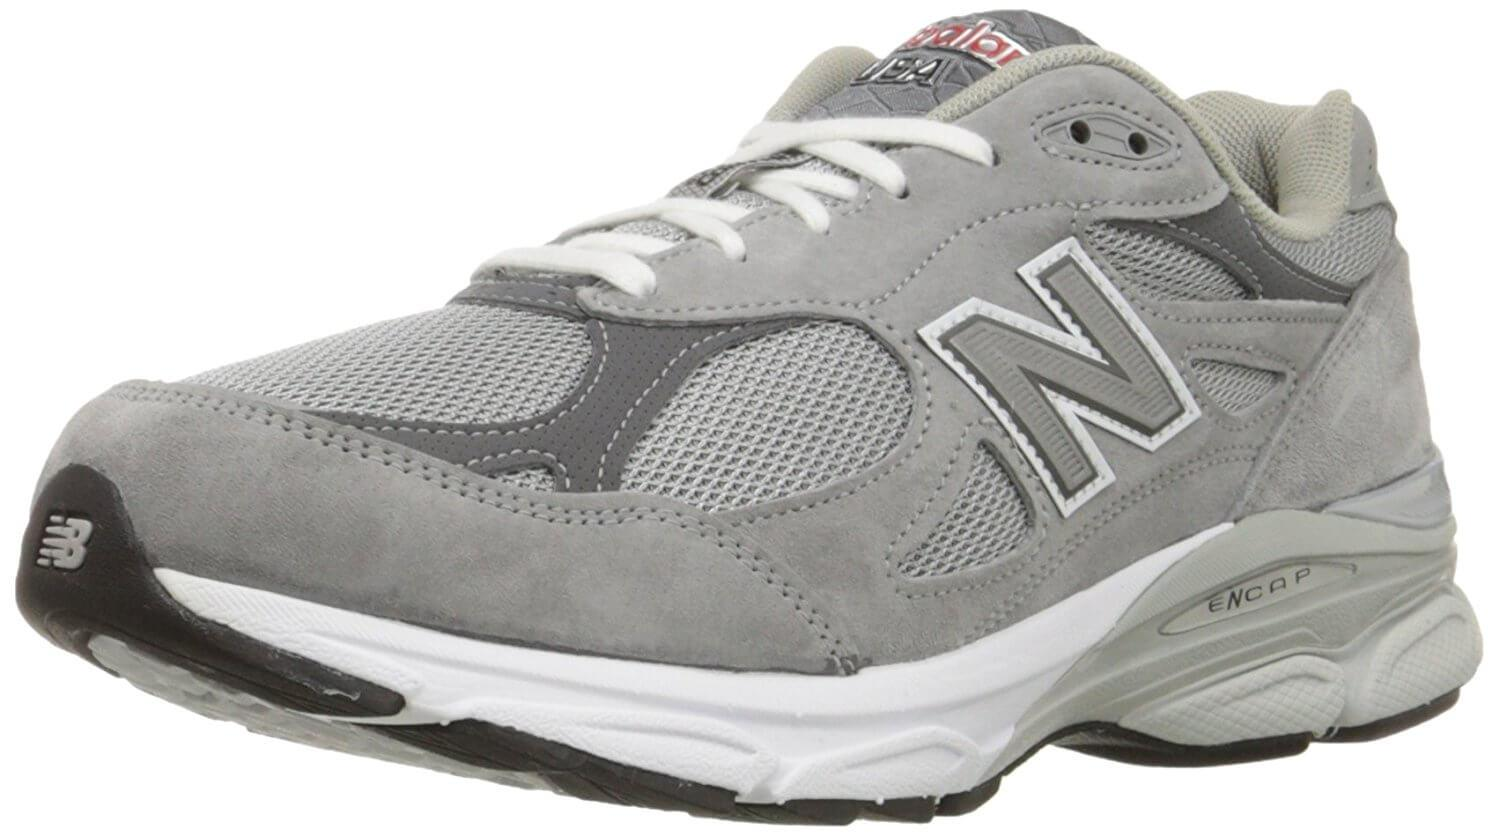 A three quarter perspective of the New Balance 990v3 running shoe